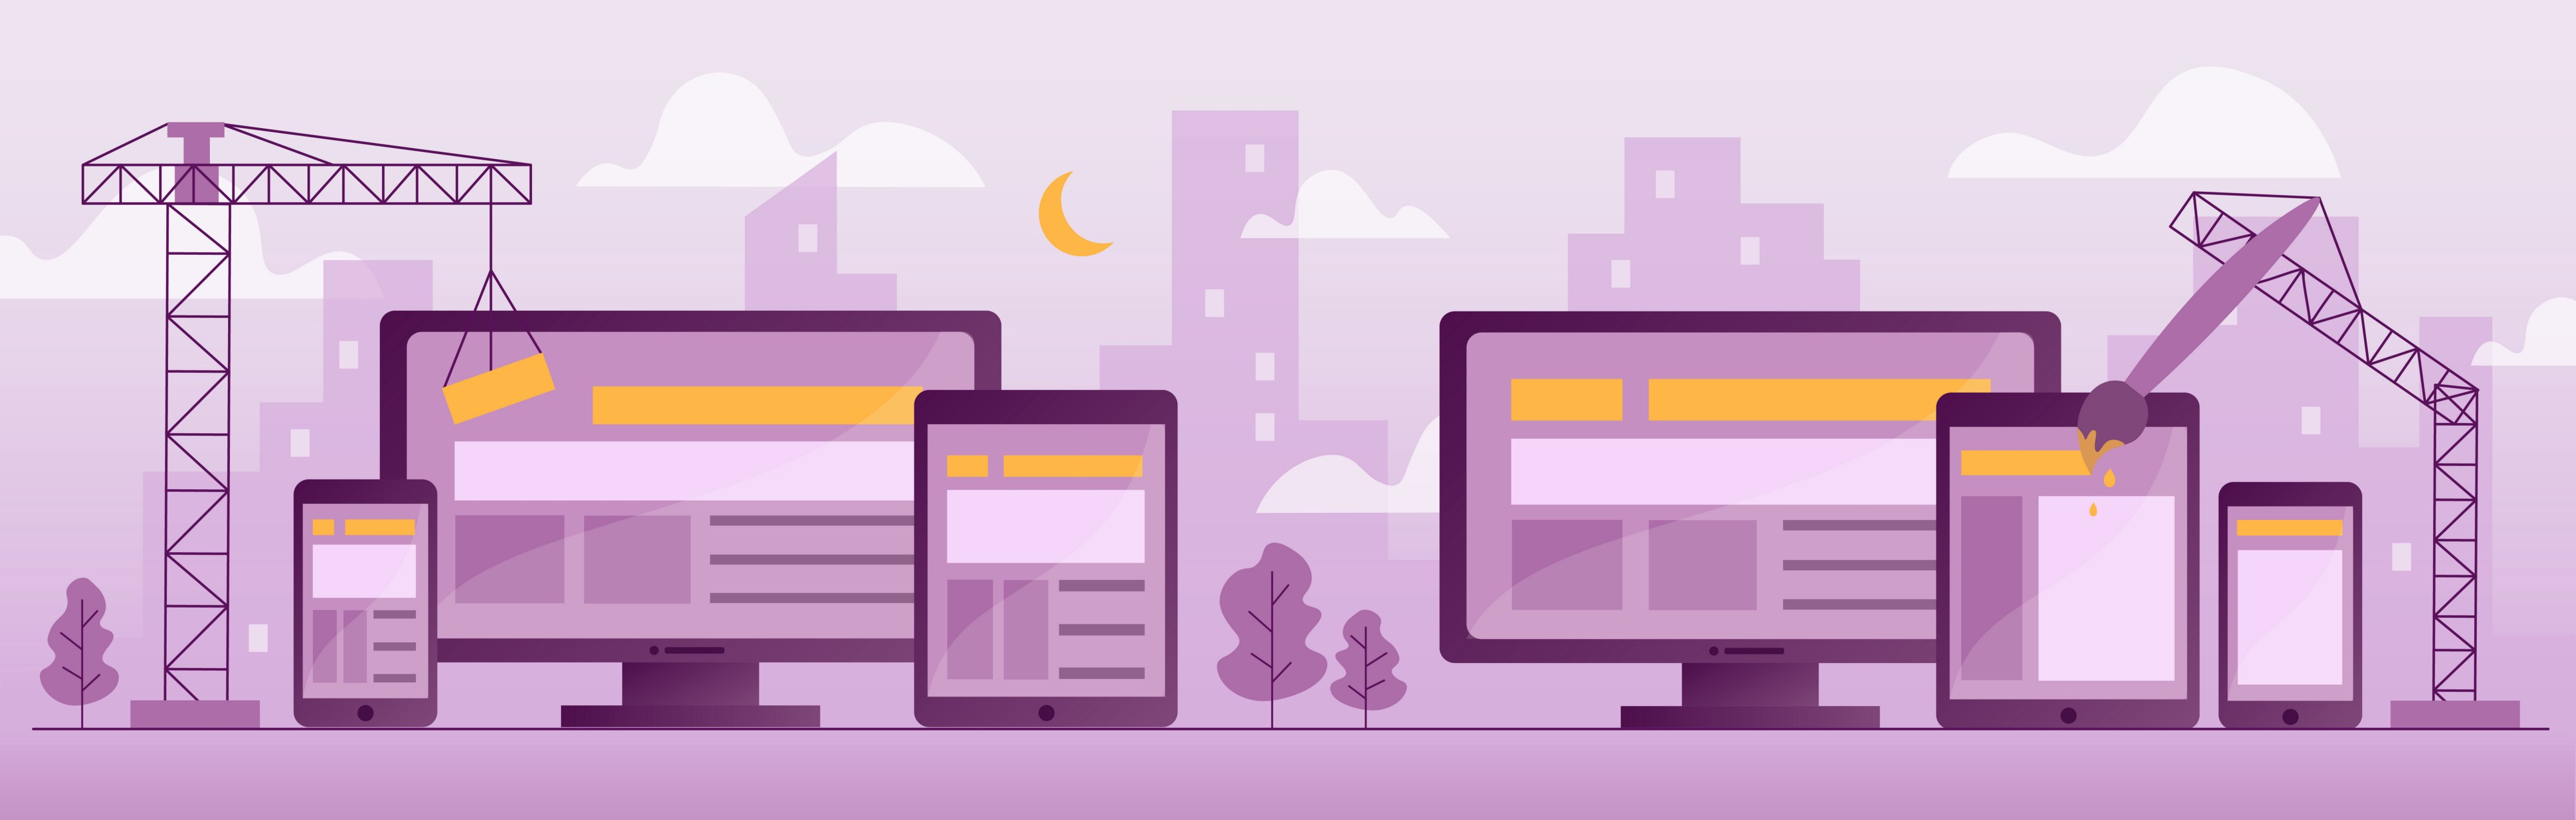 Don't Debate Responsive VS Adaptive Design  - Wayfair Design